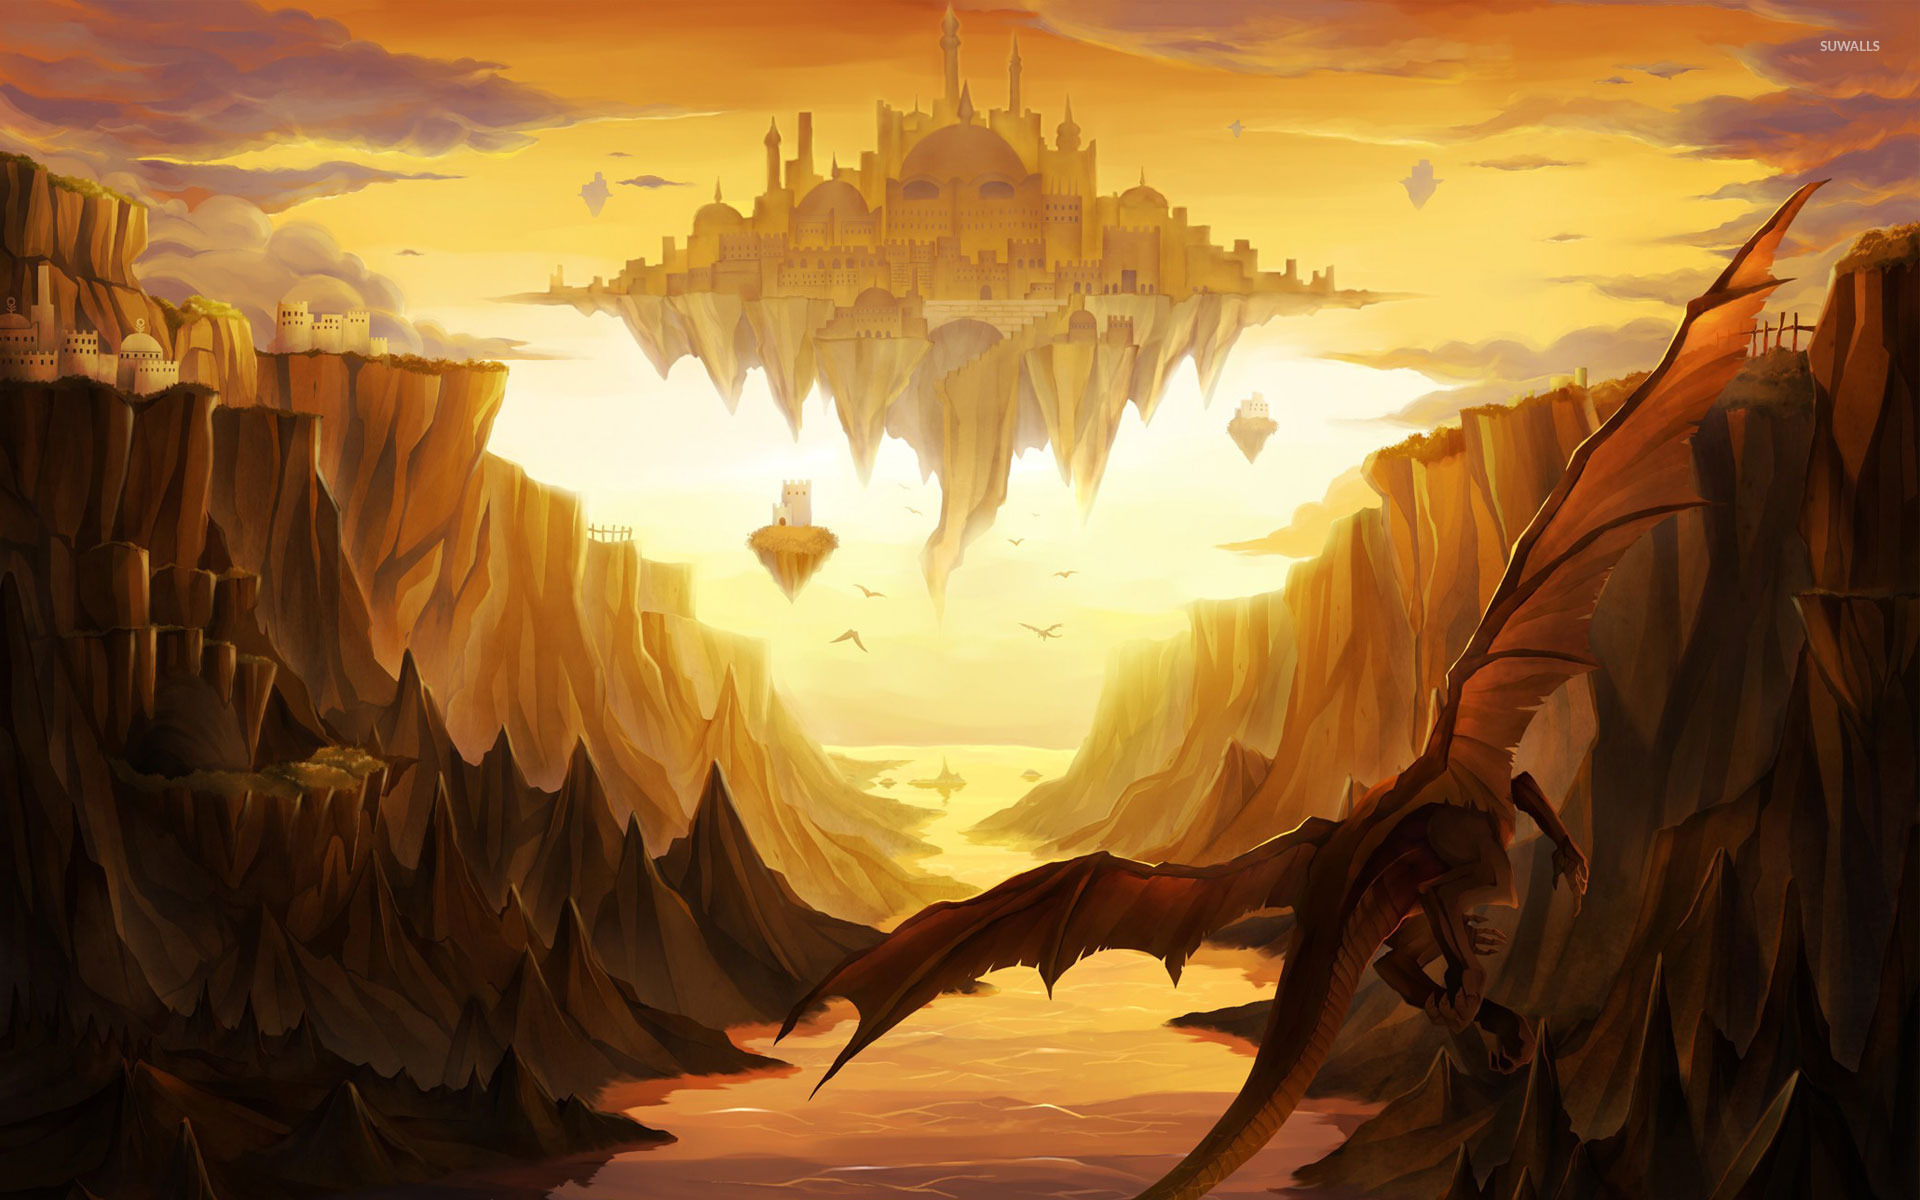 Dragons Around The Floating Castle Wallpaper